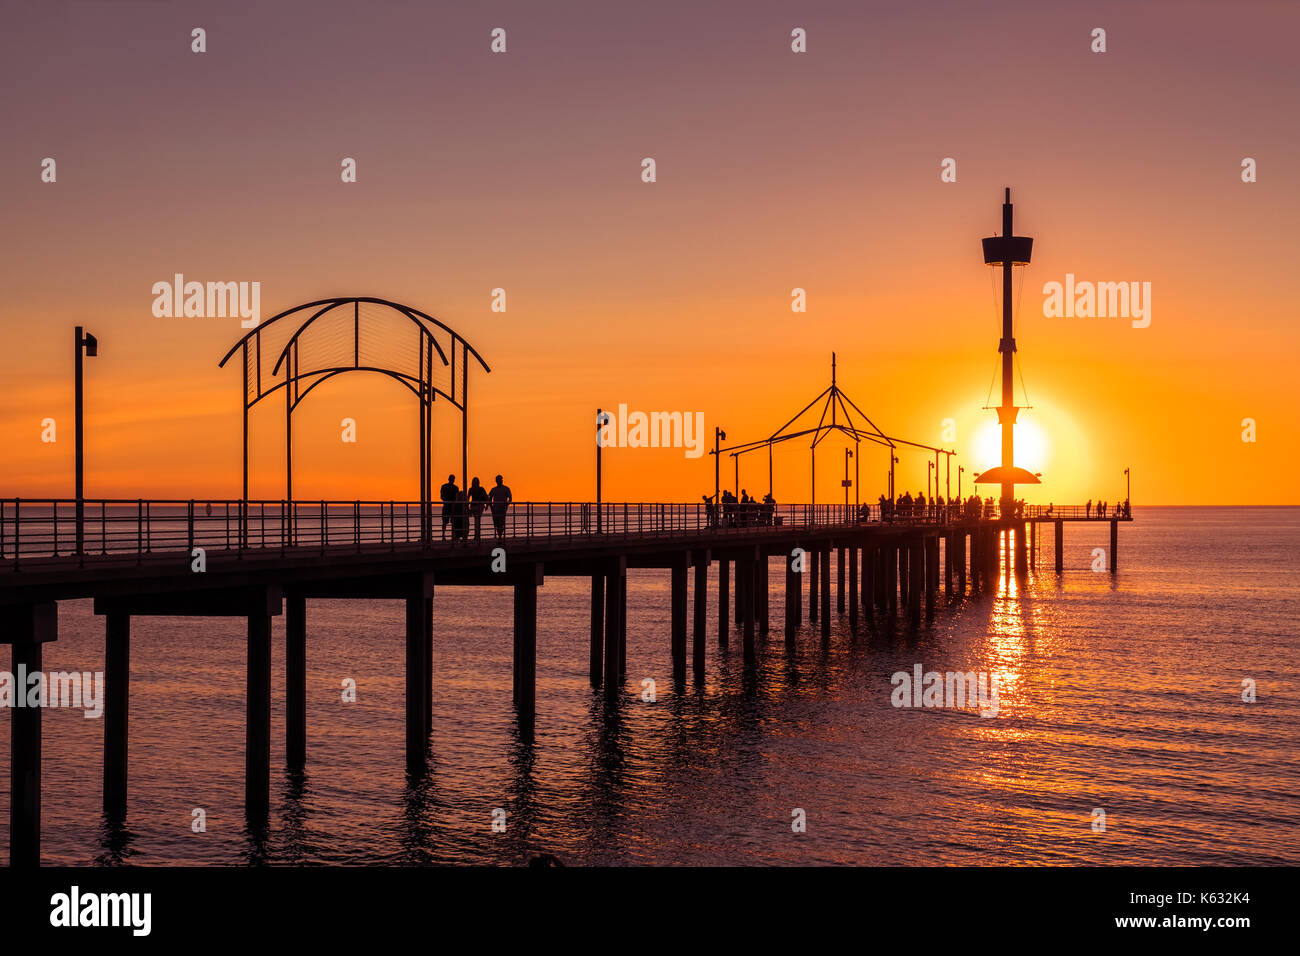 Brighton Beach jetty with people at sunset, South Australia - Stock Image